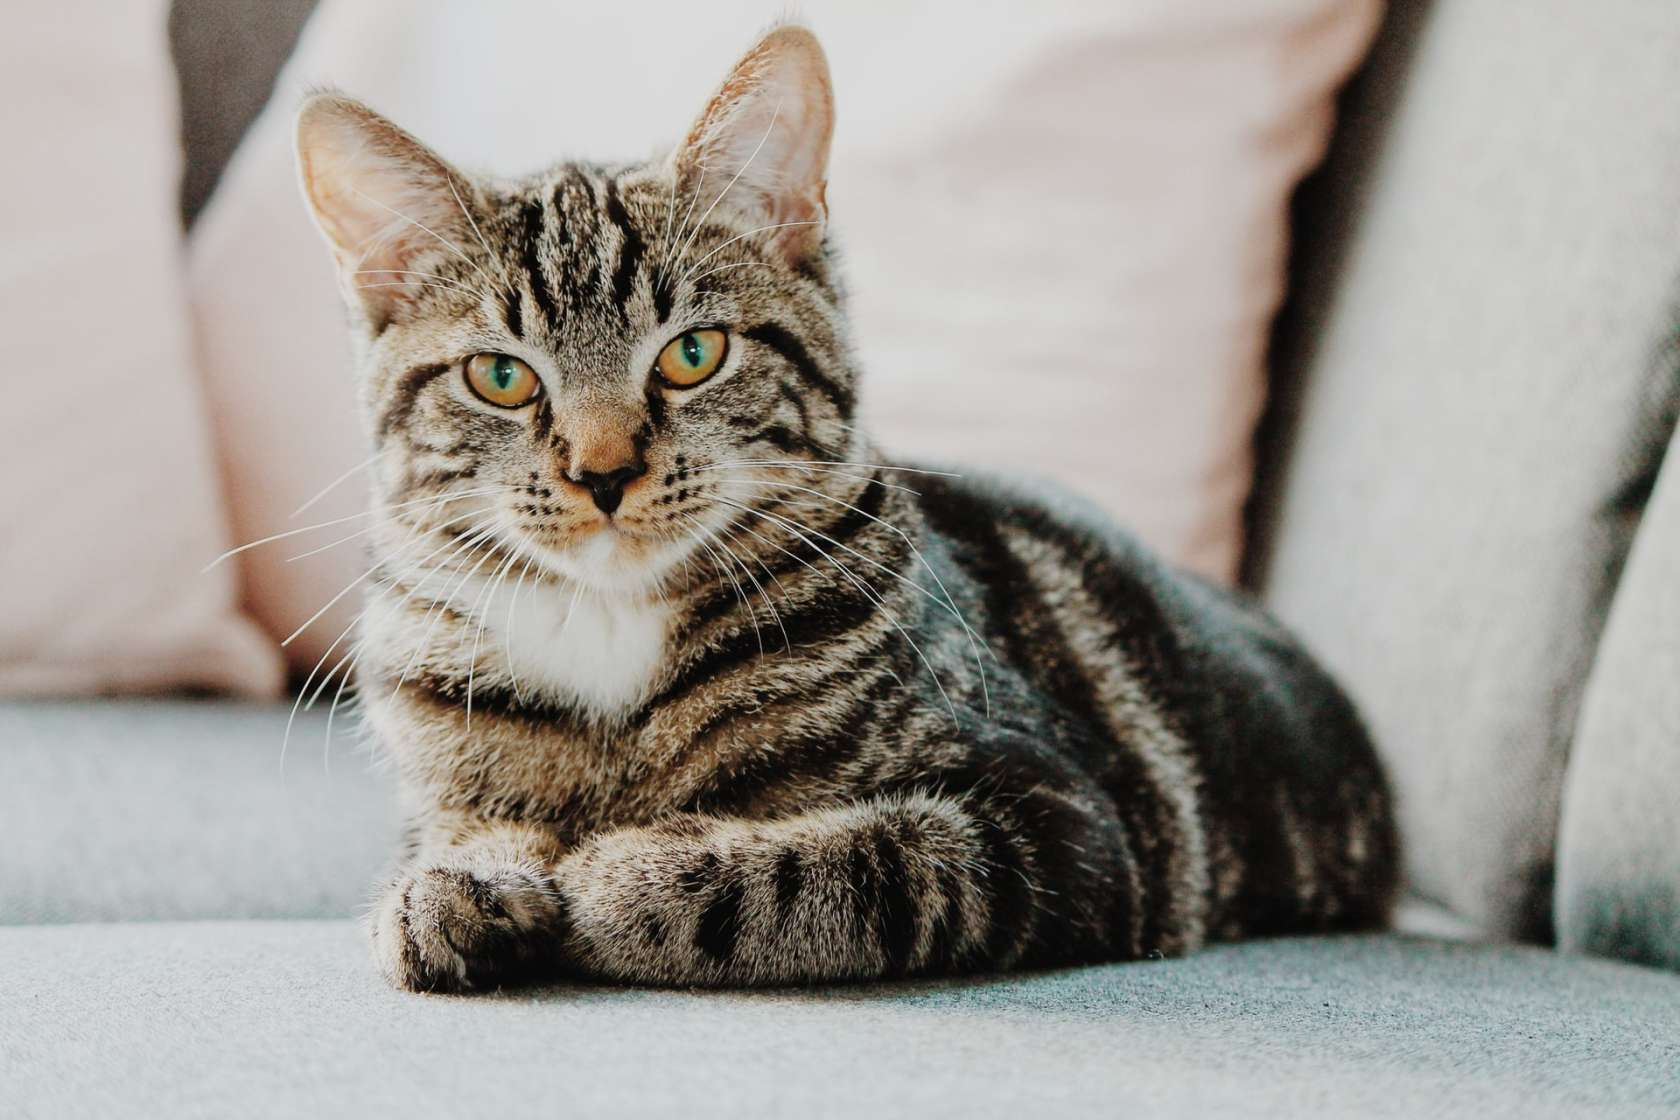 A striped tabby cat sits on a bed